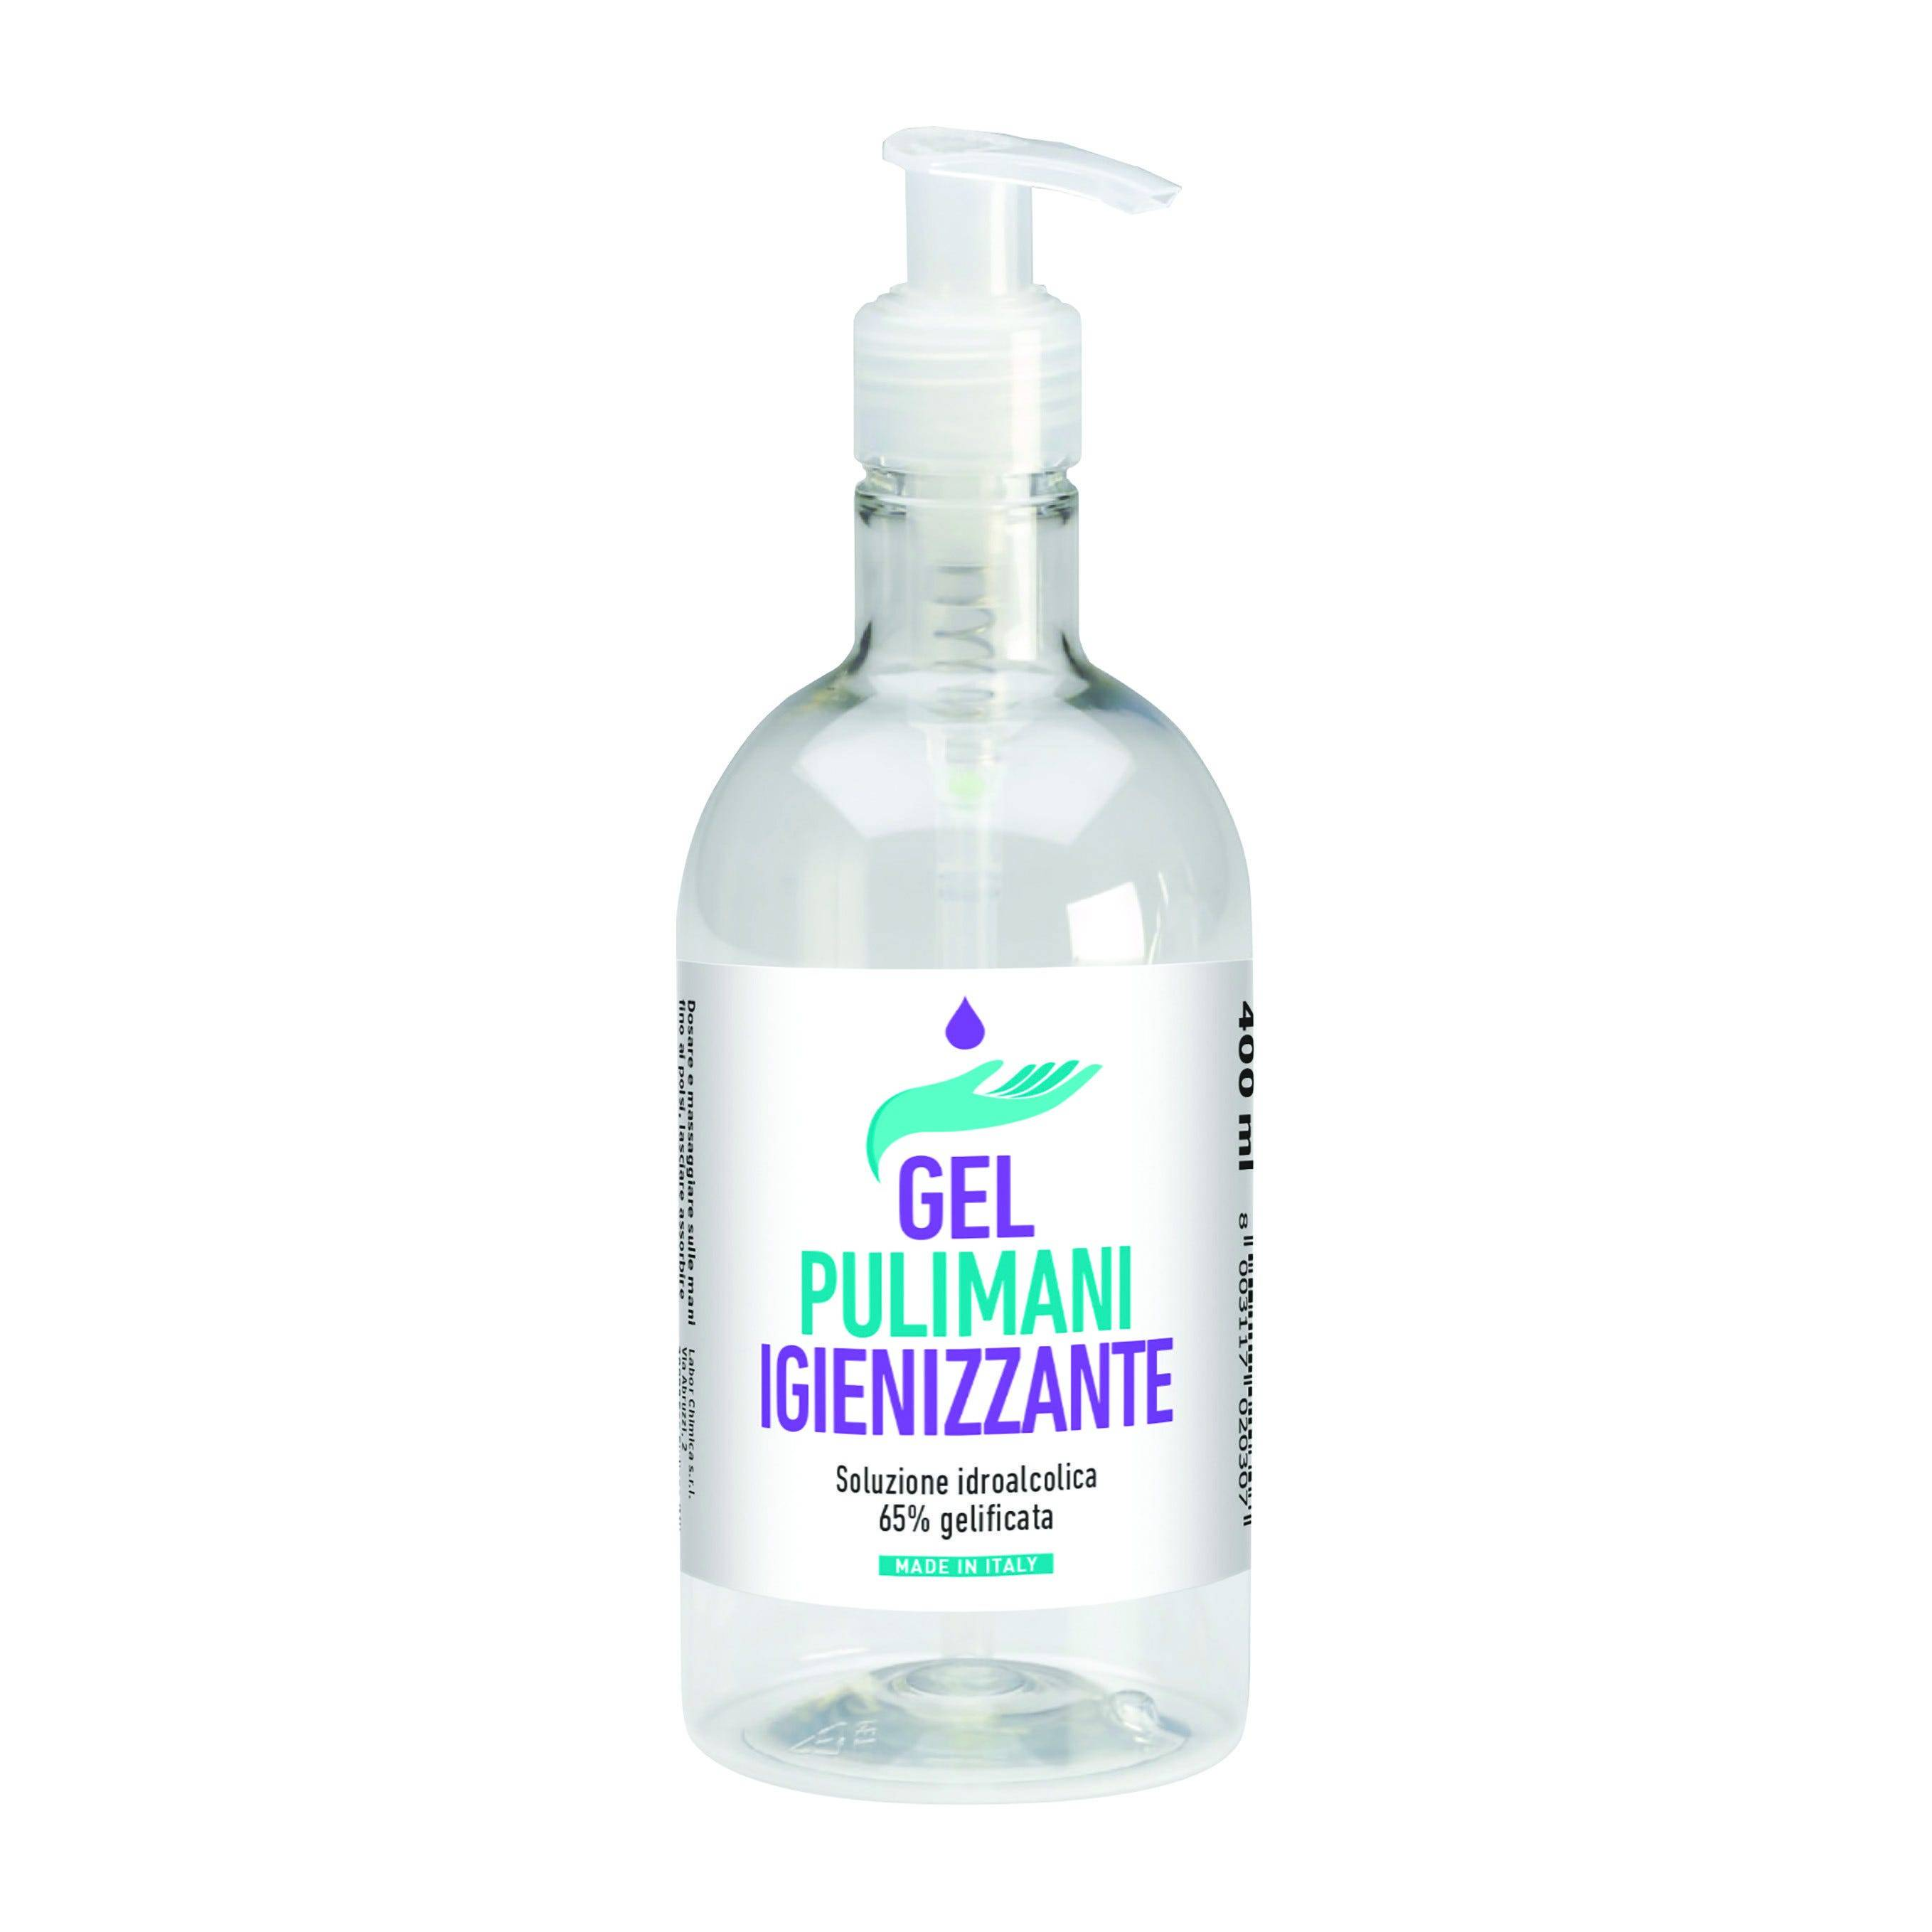 Gel Igienizzante Per Mani Labor 400 Ml 65% Alcool Con Dispenser